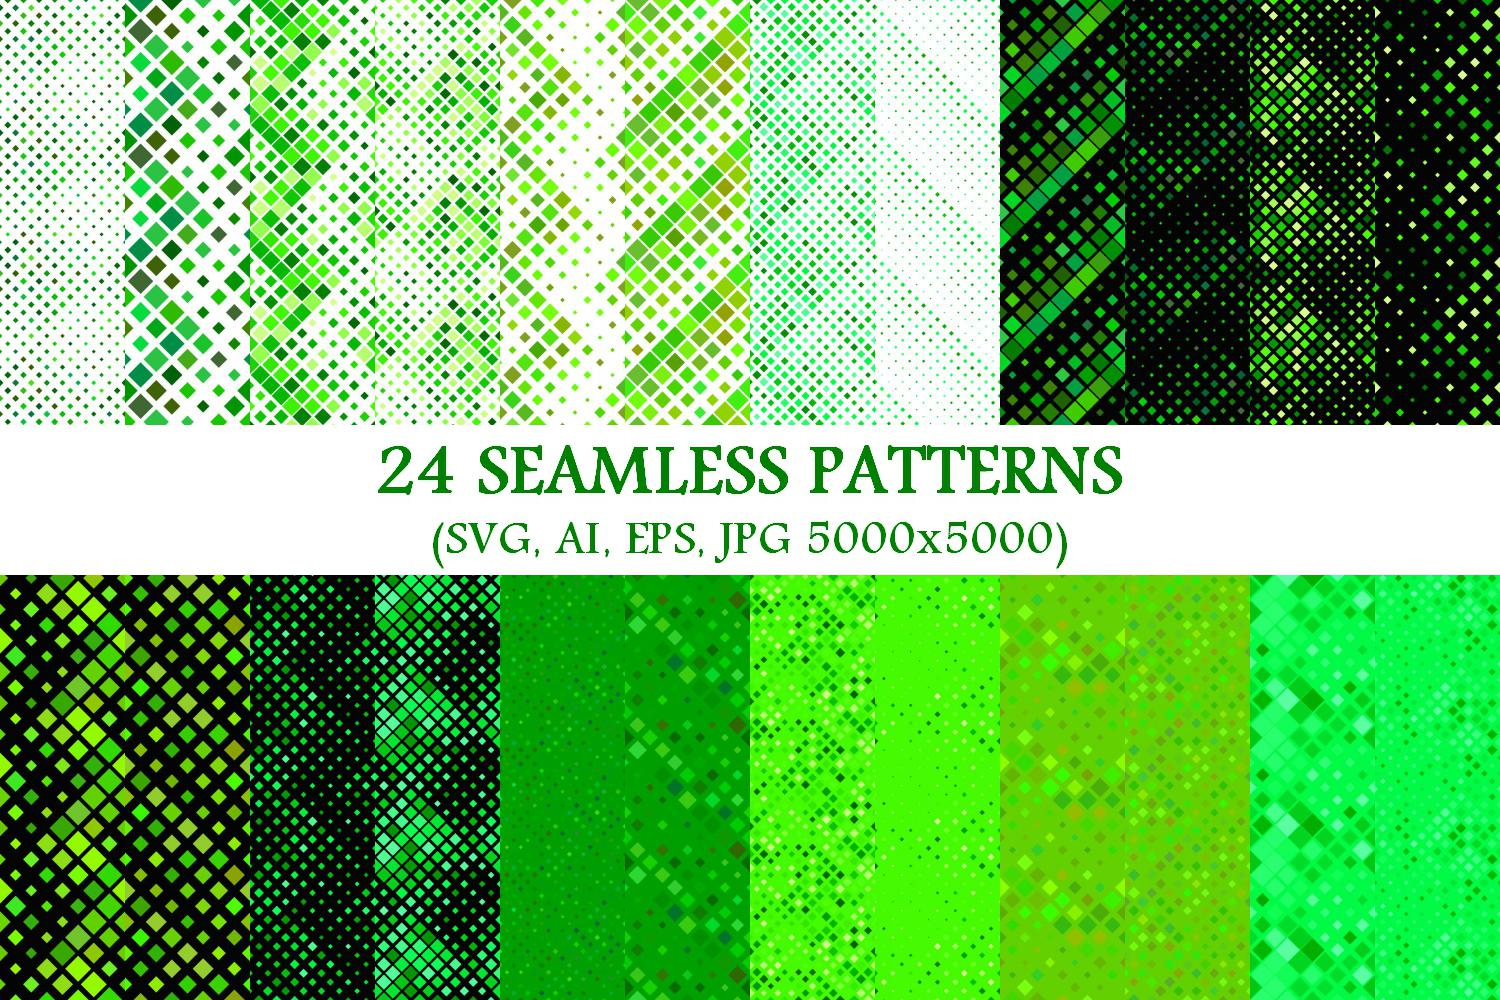 24 Seamless Green Square Patterns example image 1